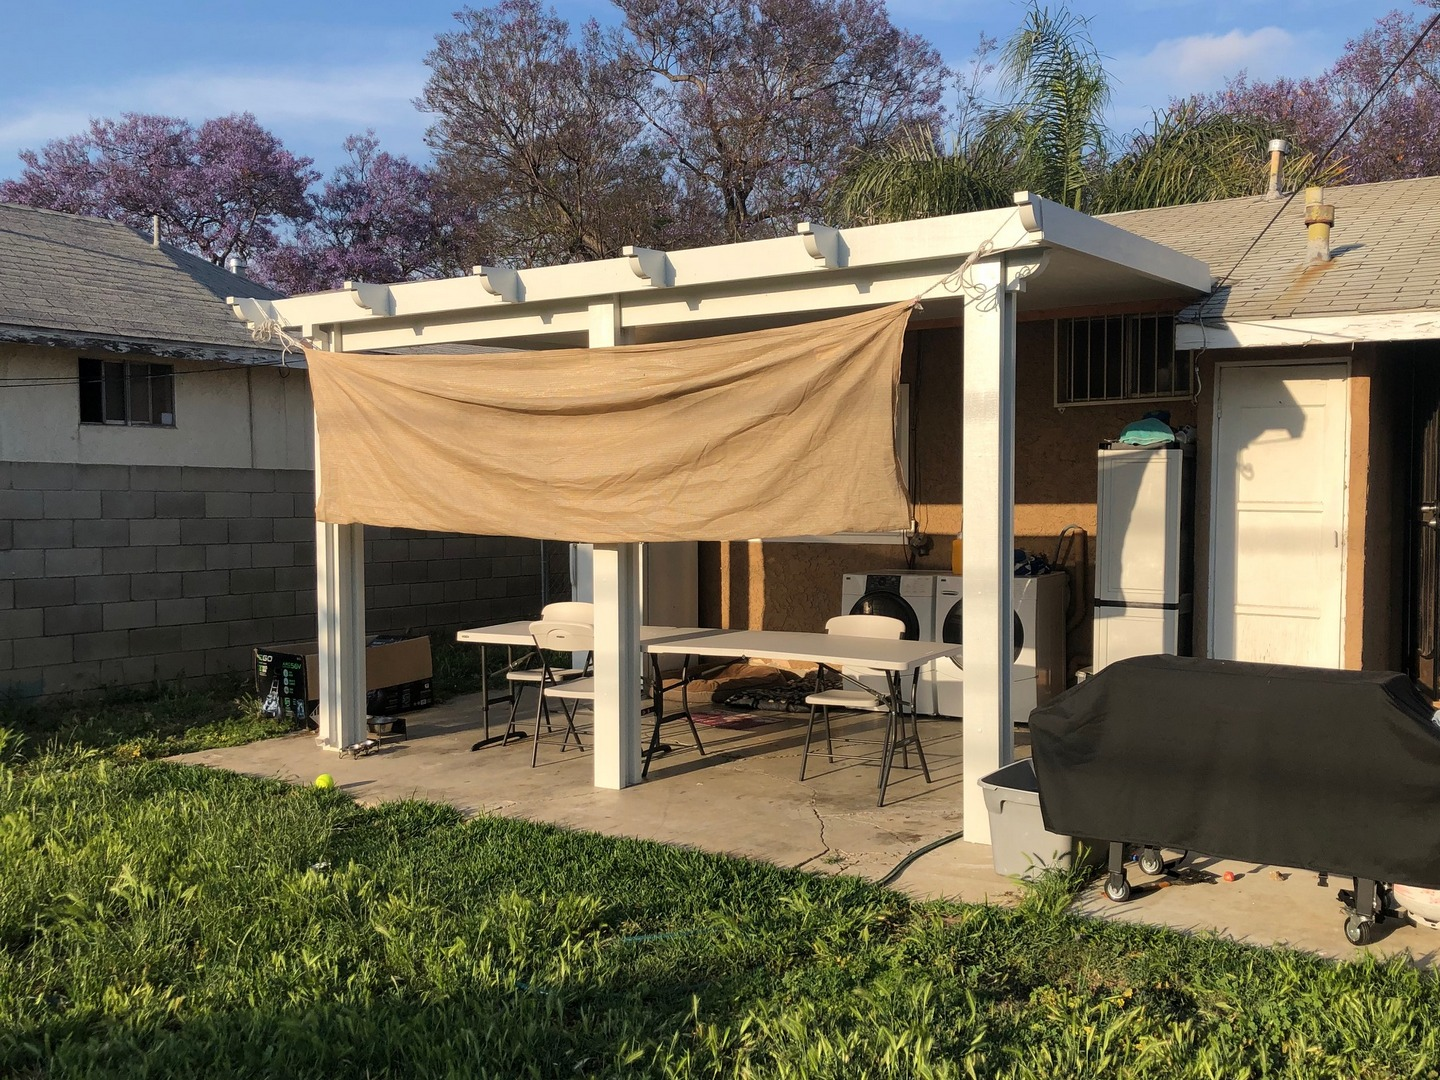 Patio Cover Project in Santa Ana